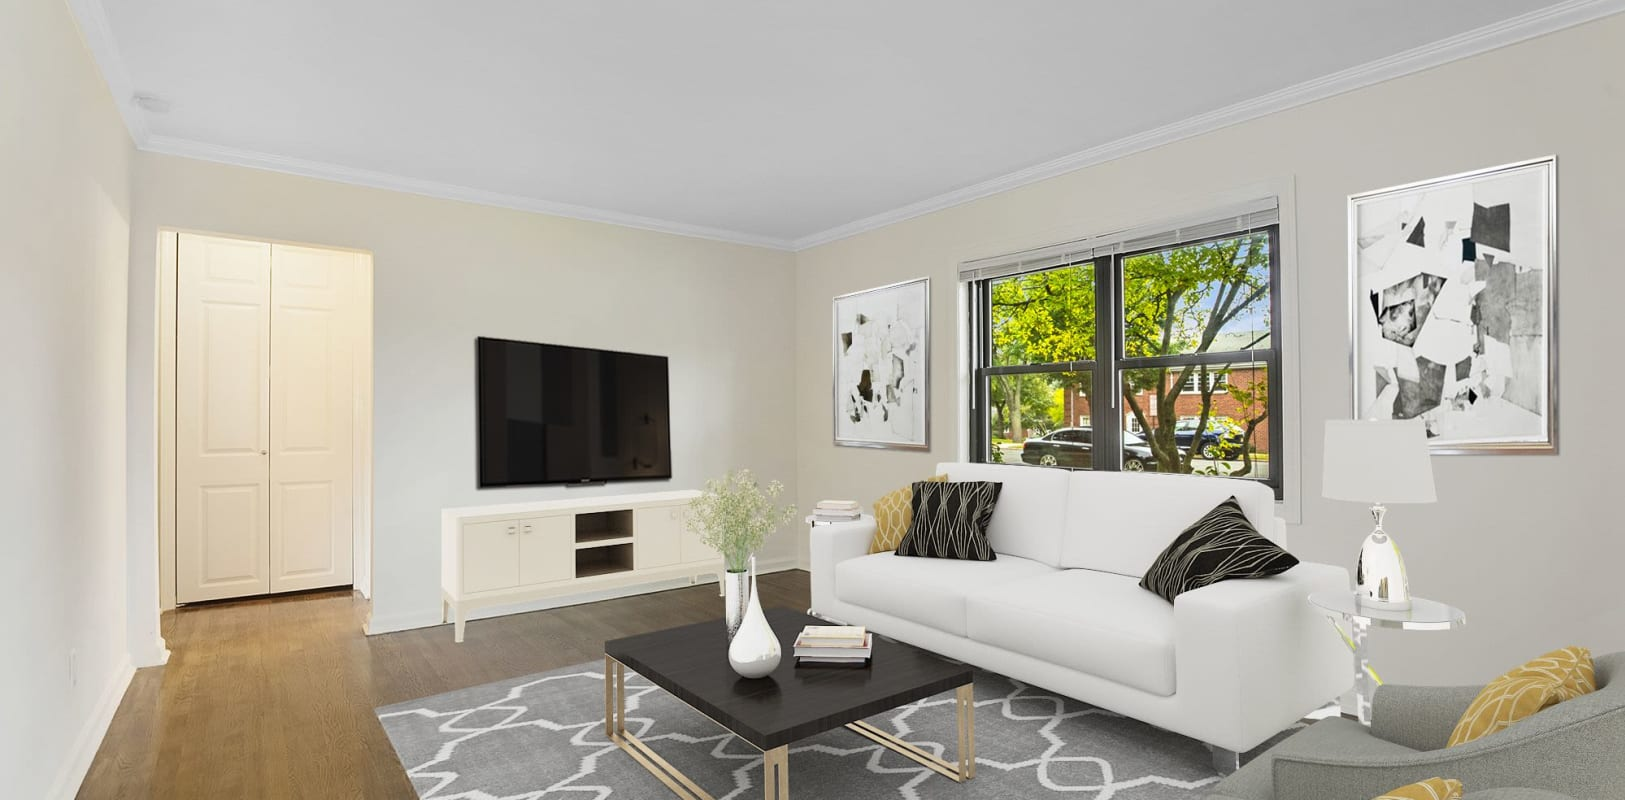 Spacious, bright living room at Continental Gardens in River Edge, New Jersey